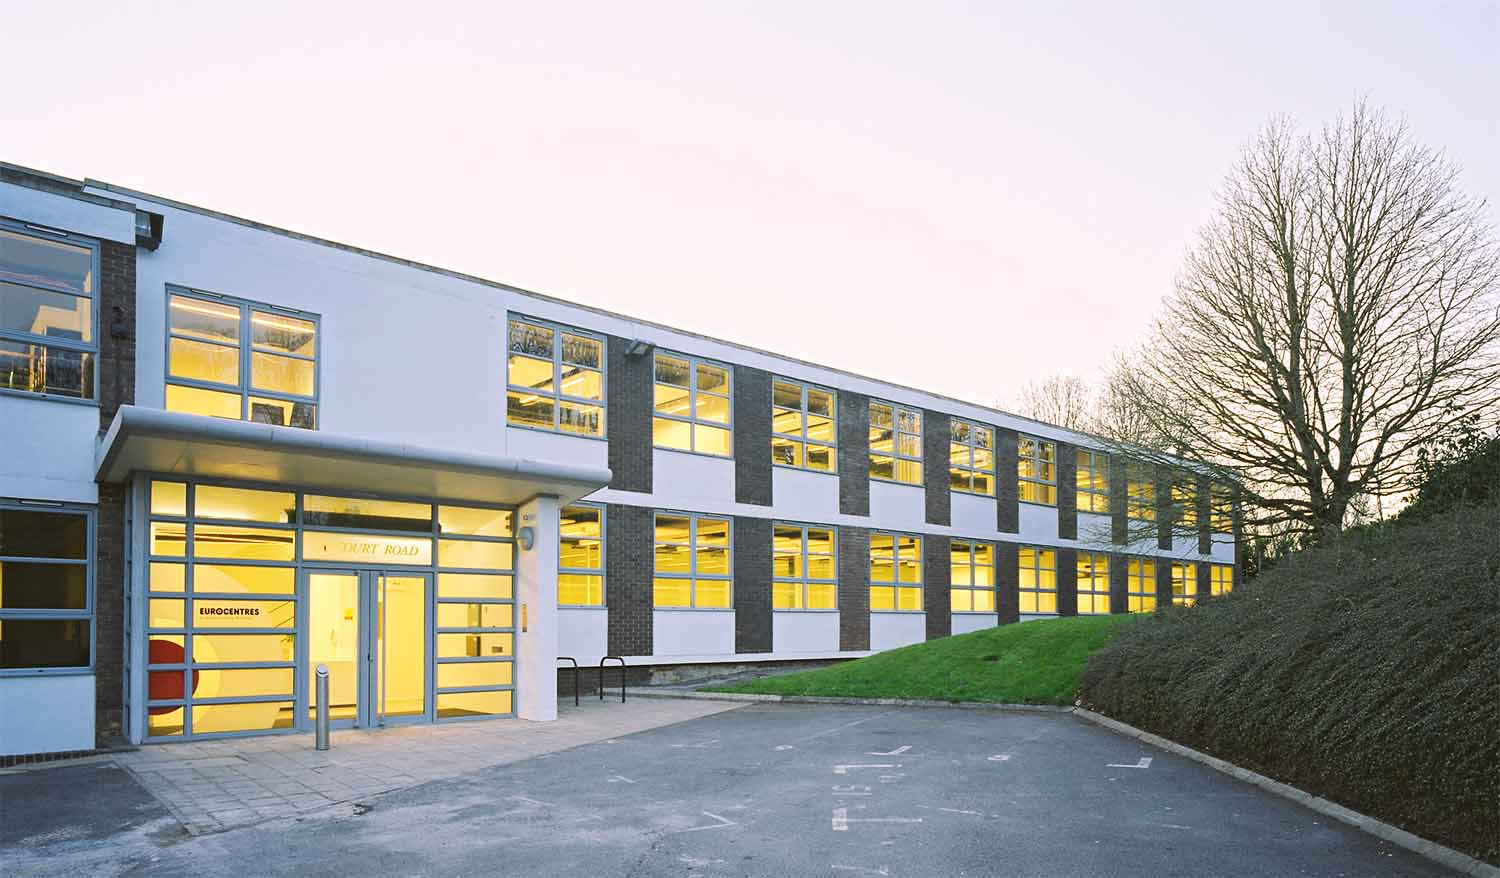 London Eltham_School_Exterior_06